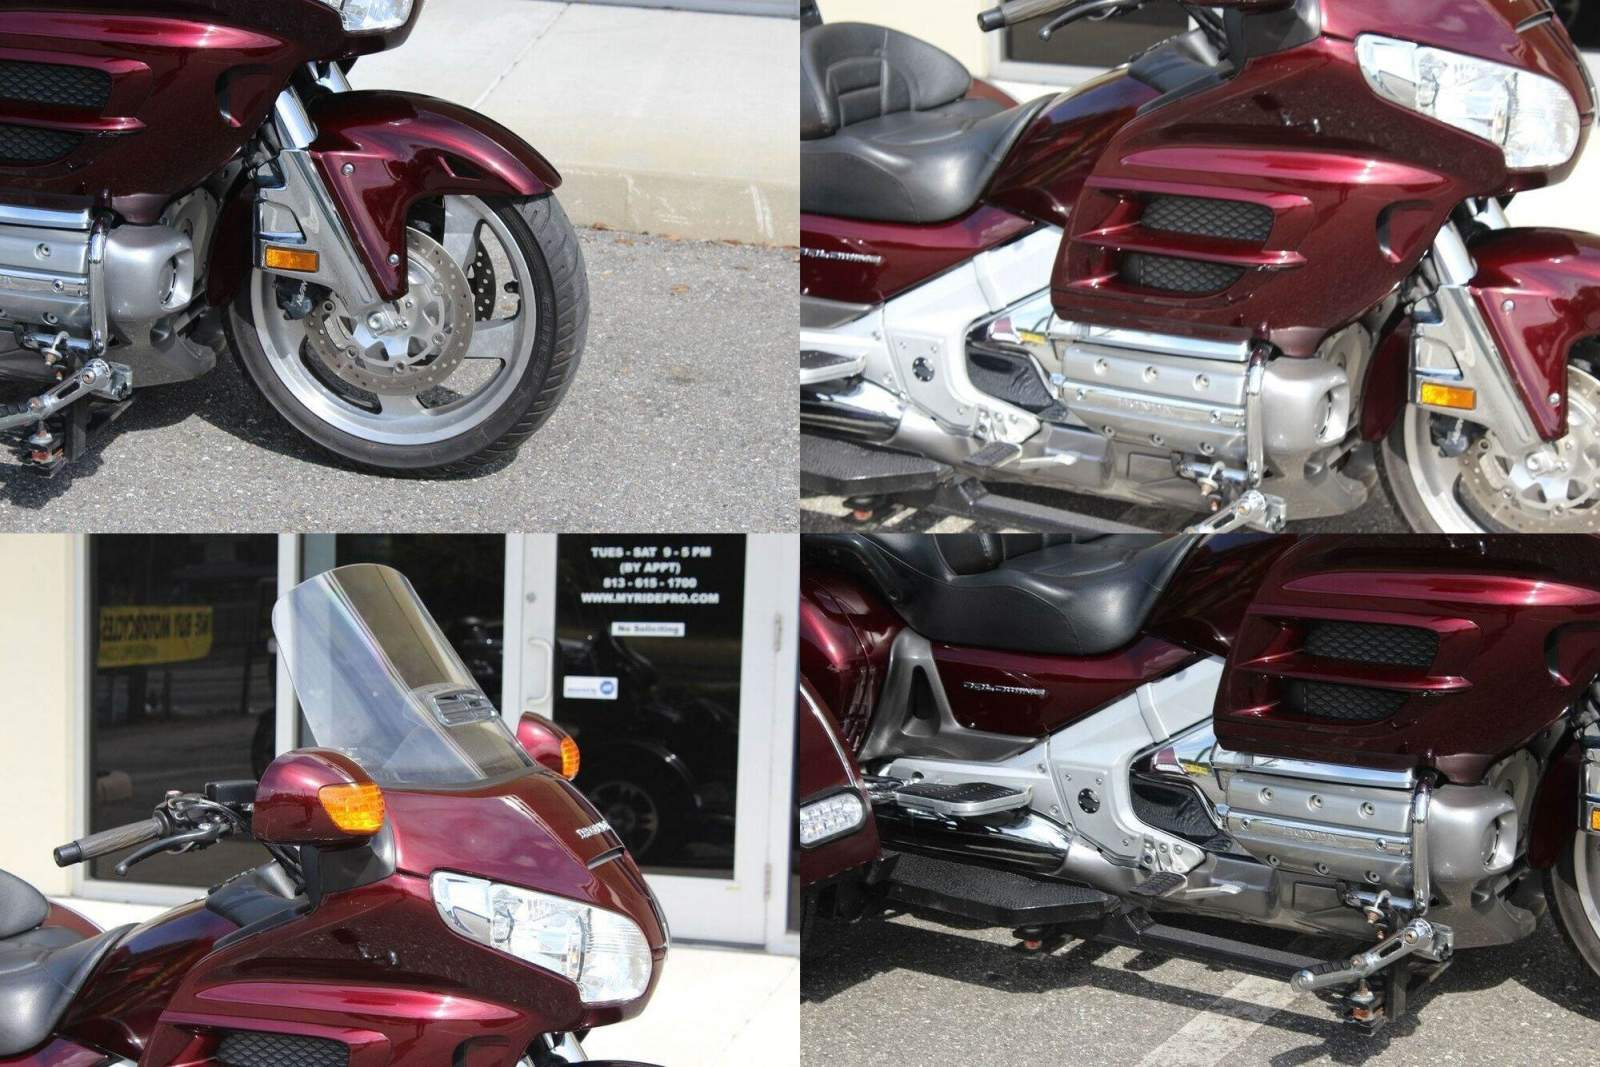 2007 Honda Gold Wing Audio / Comfort / Navi Mar used for sale near me